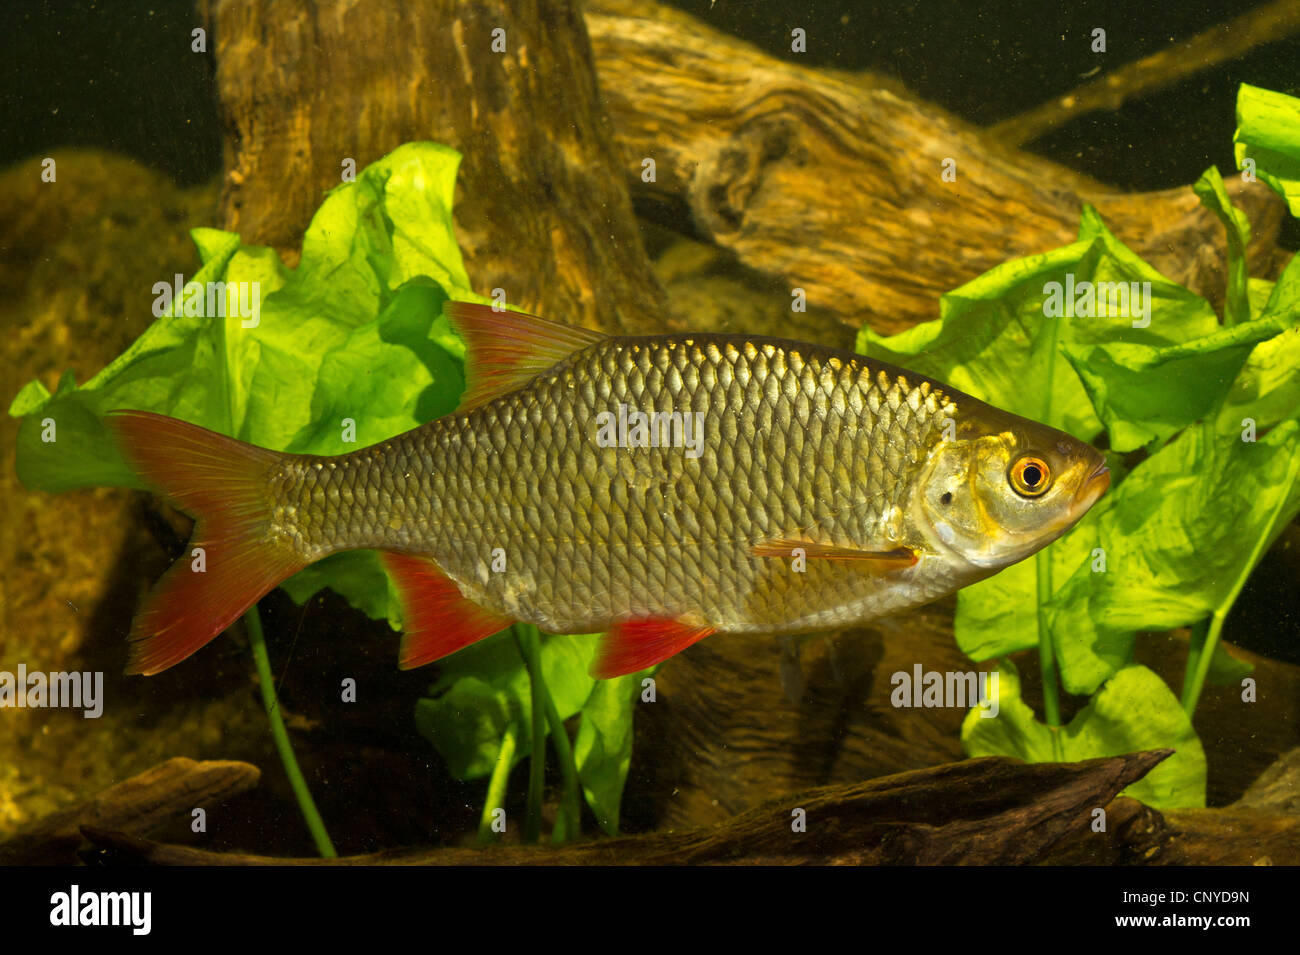 Fish Swimming Stock Photos & Fish Swimming Stock Images - Alamy